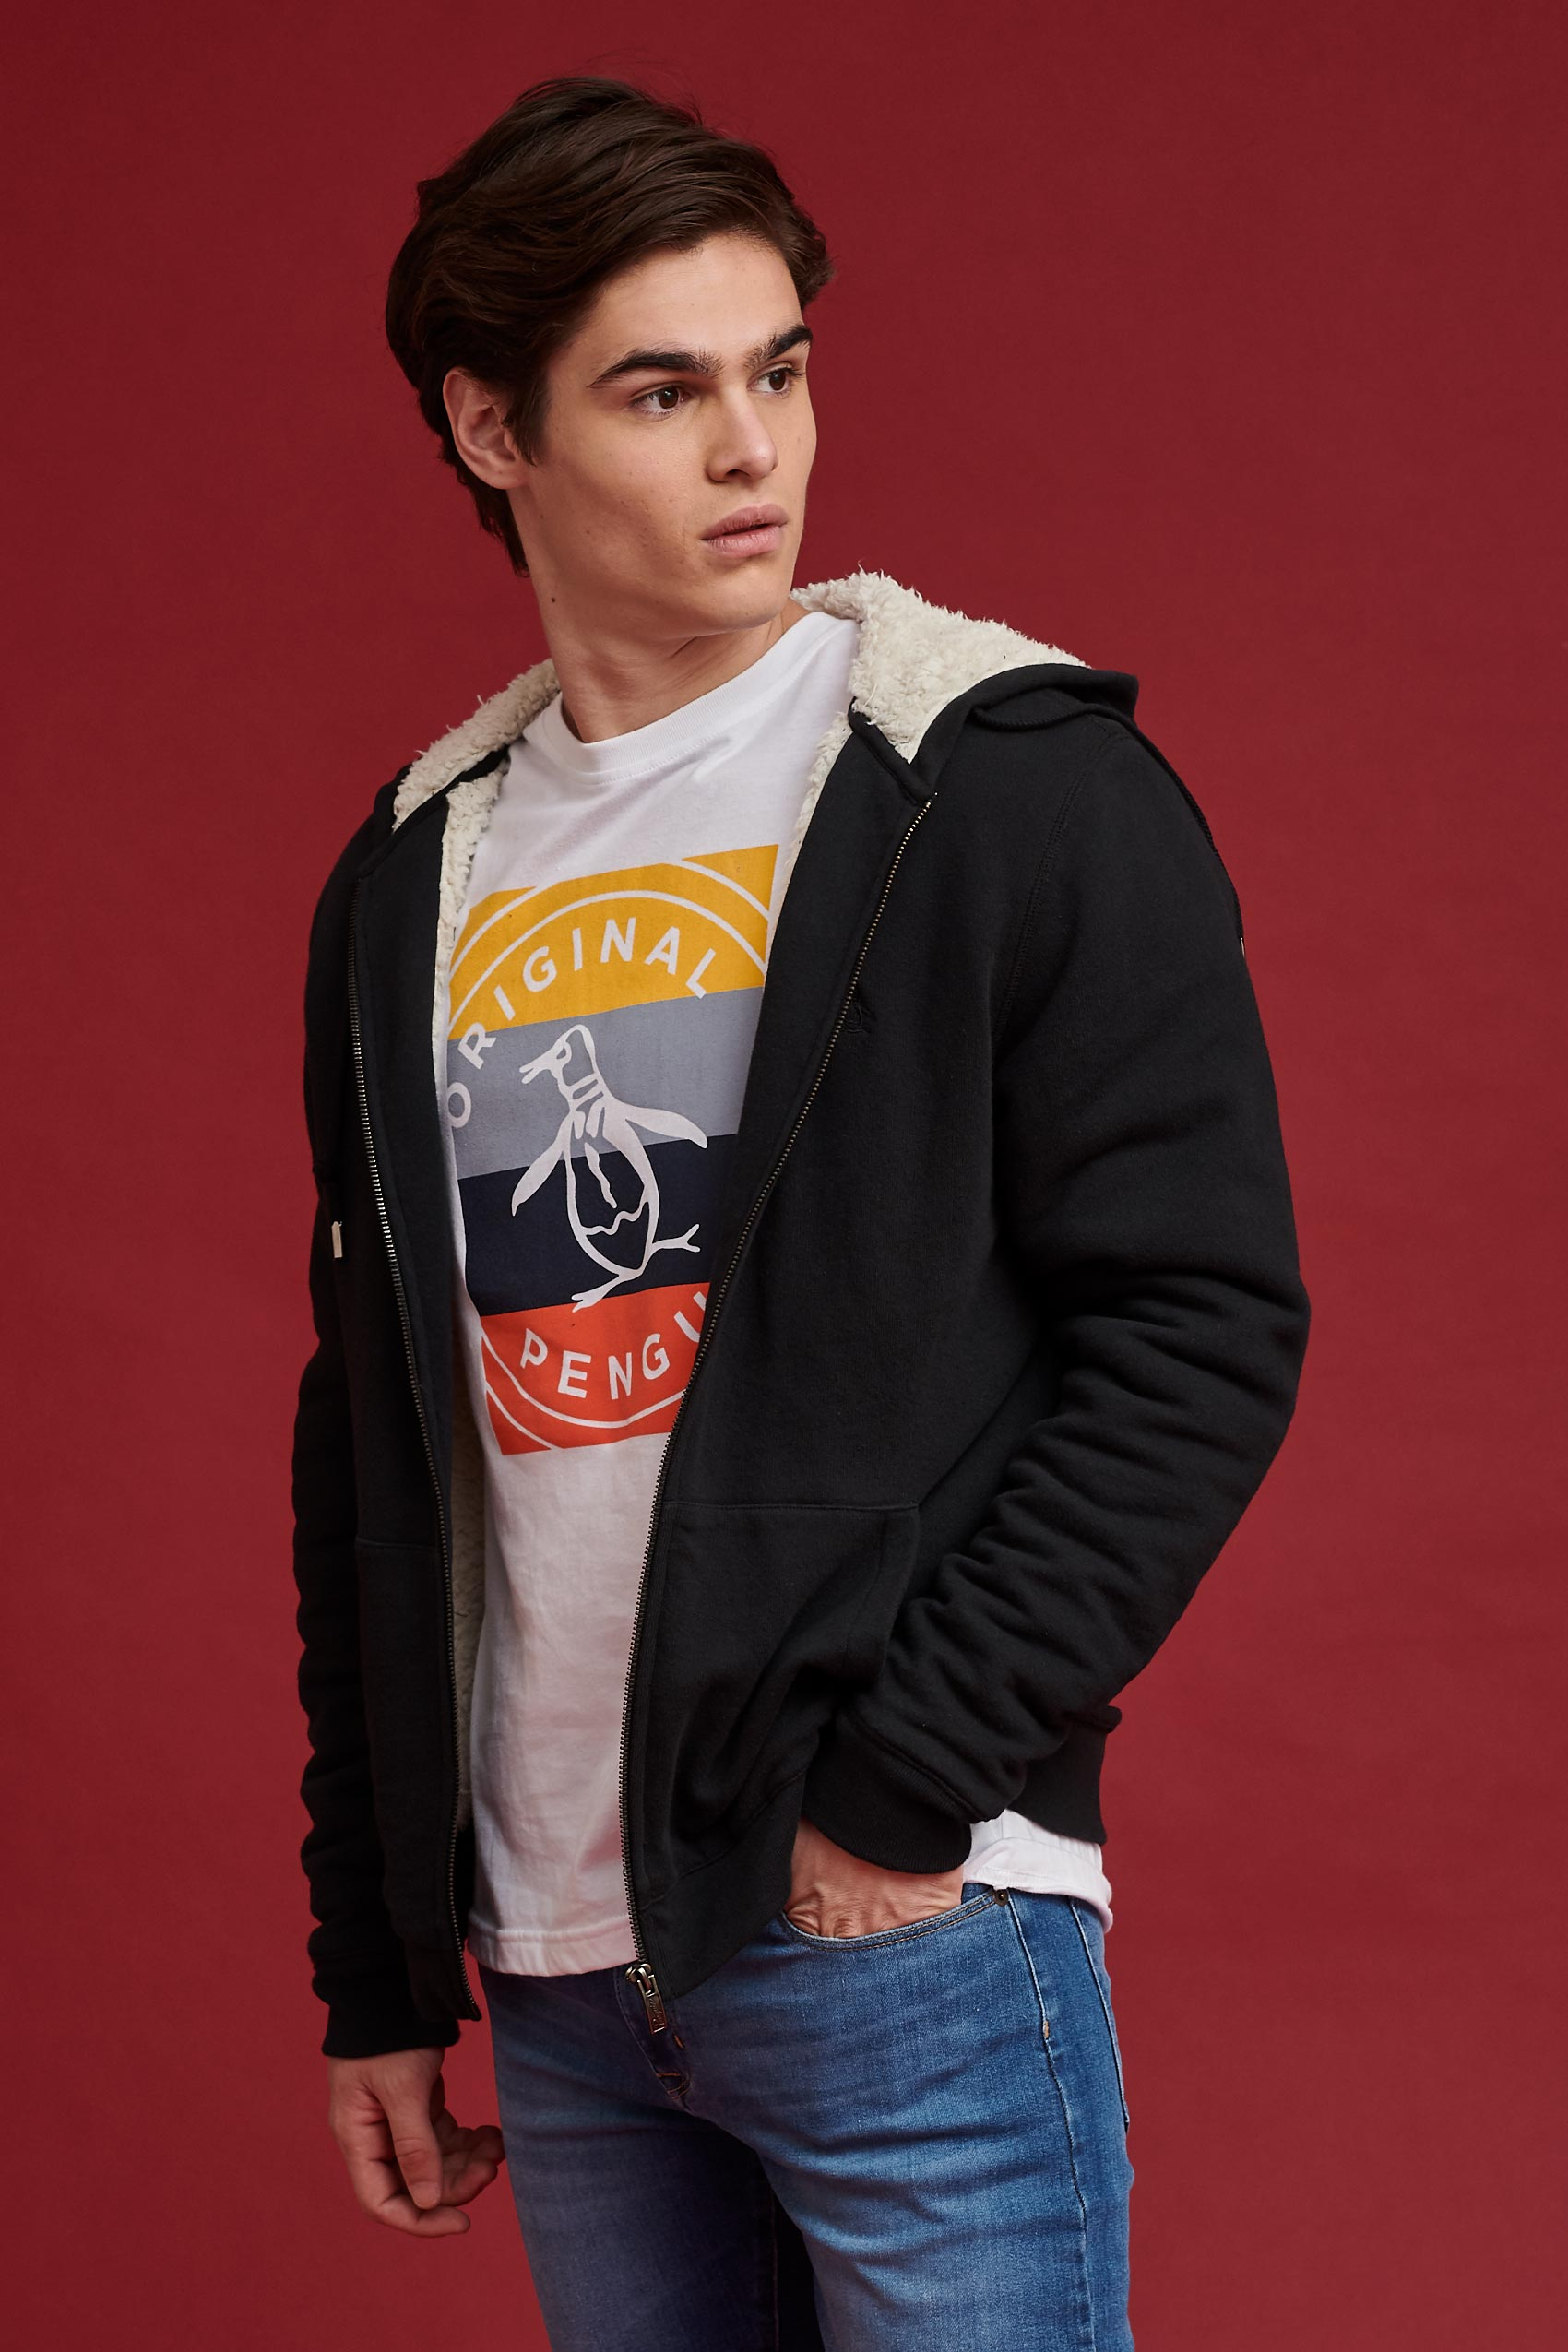 penguin_sherpa-lined-zip-hoodie_59-13-2020__picture-12930